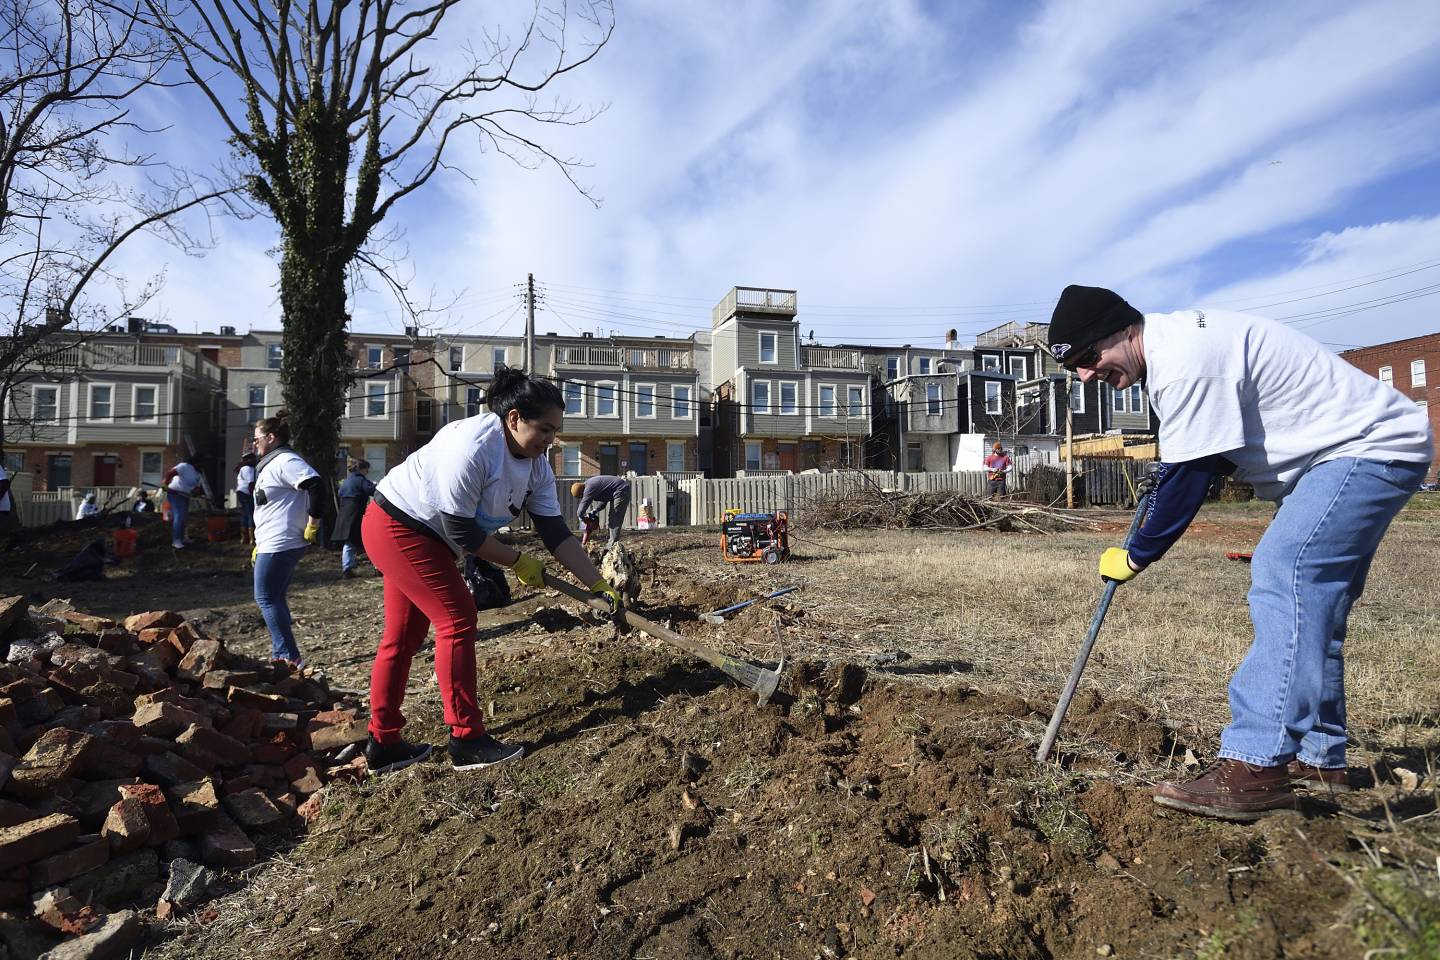 Volunteers shovel and ice pick ground in a vacant Baltimore lot